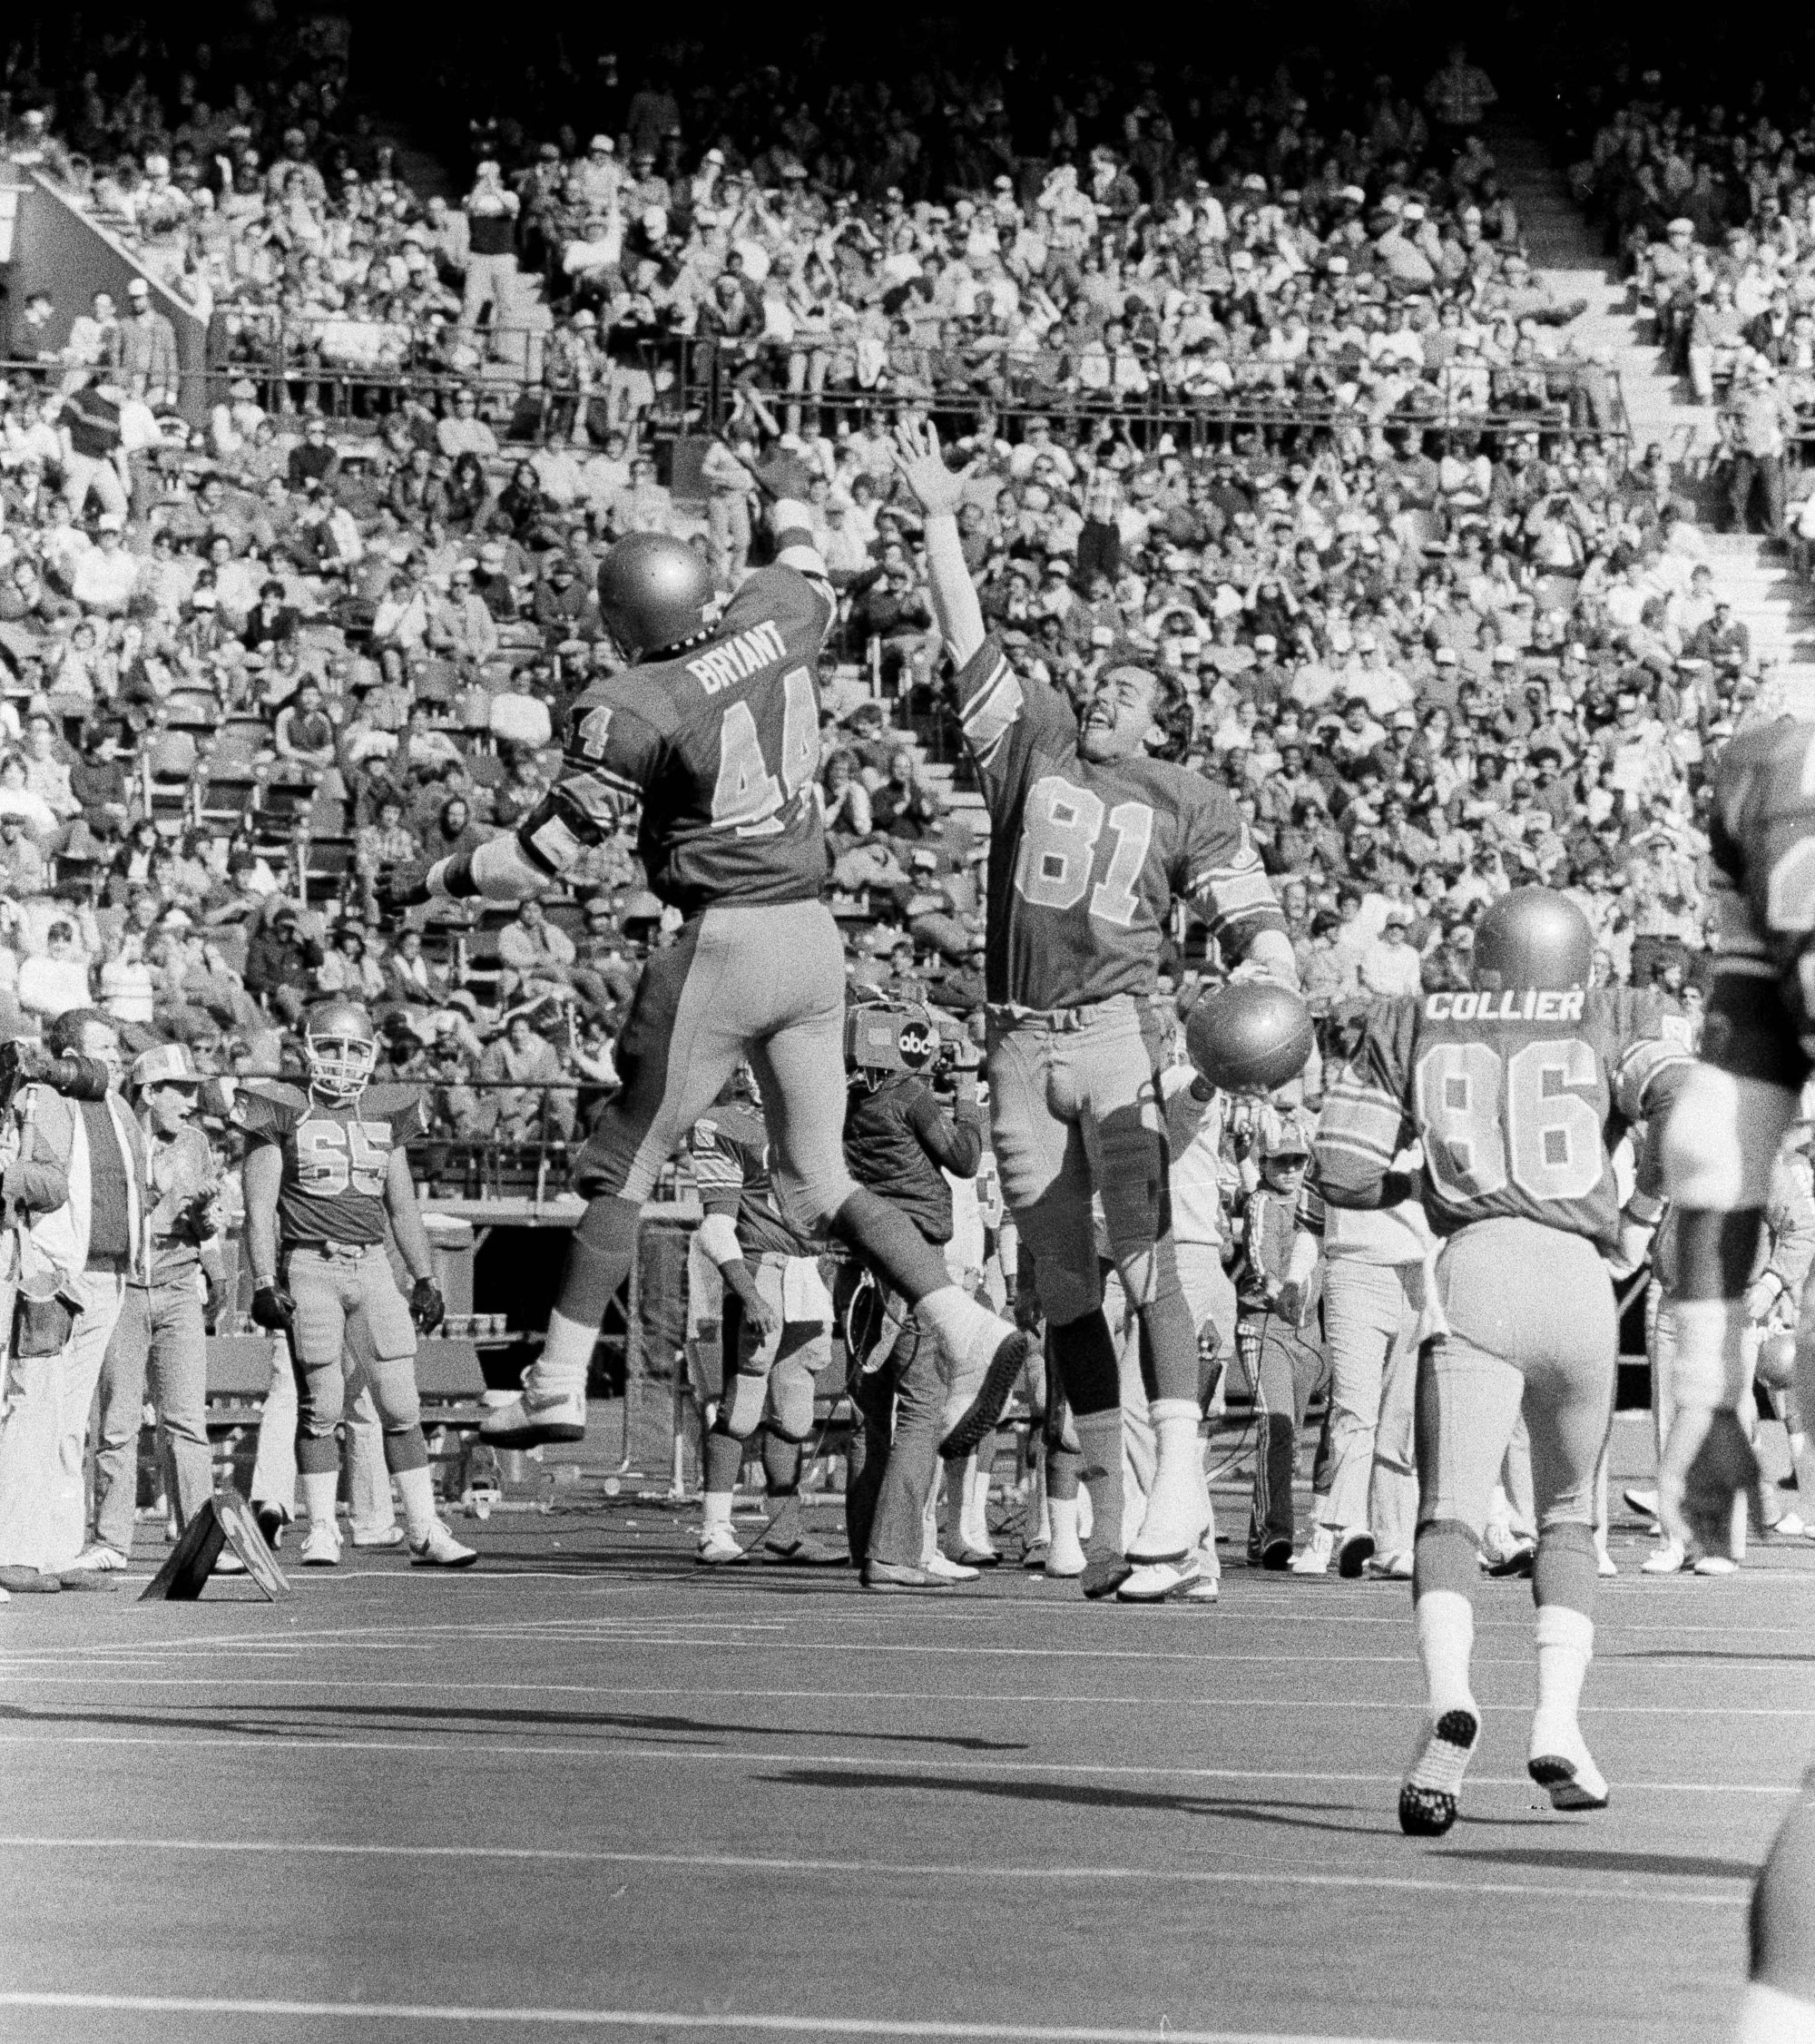 Philadelphia Stars Kelvin Bryant, left, leaps in the air with teammate Scott Fitzkee for a high five in celebration of Bryant's second quarter touchdown against the New Jersey Generals at Veterans Stadium in Philadelphia, March 13, 1983. The former North Carolina player led his team to a 25-0 victory with 114 yards rushing. (AP Photo/George Widman)